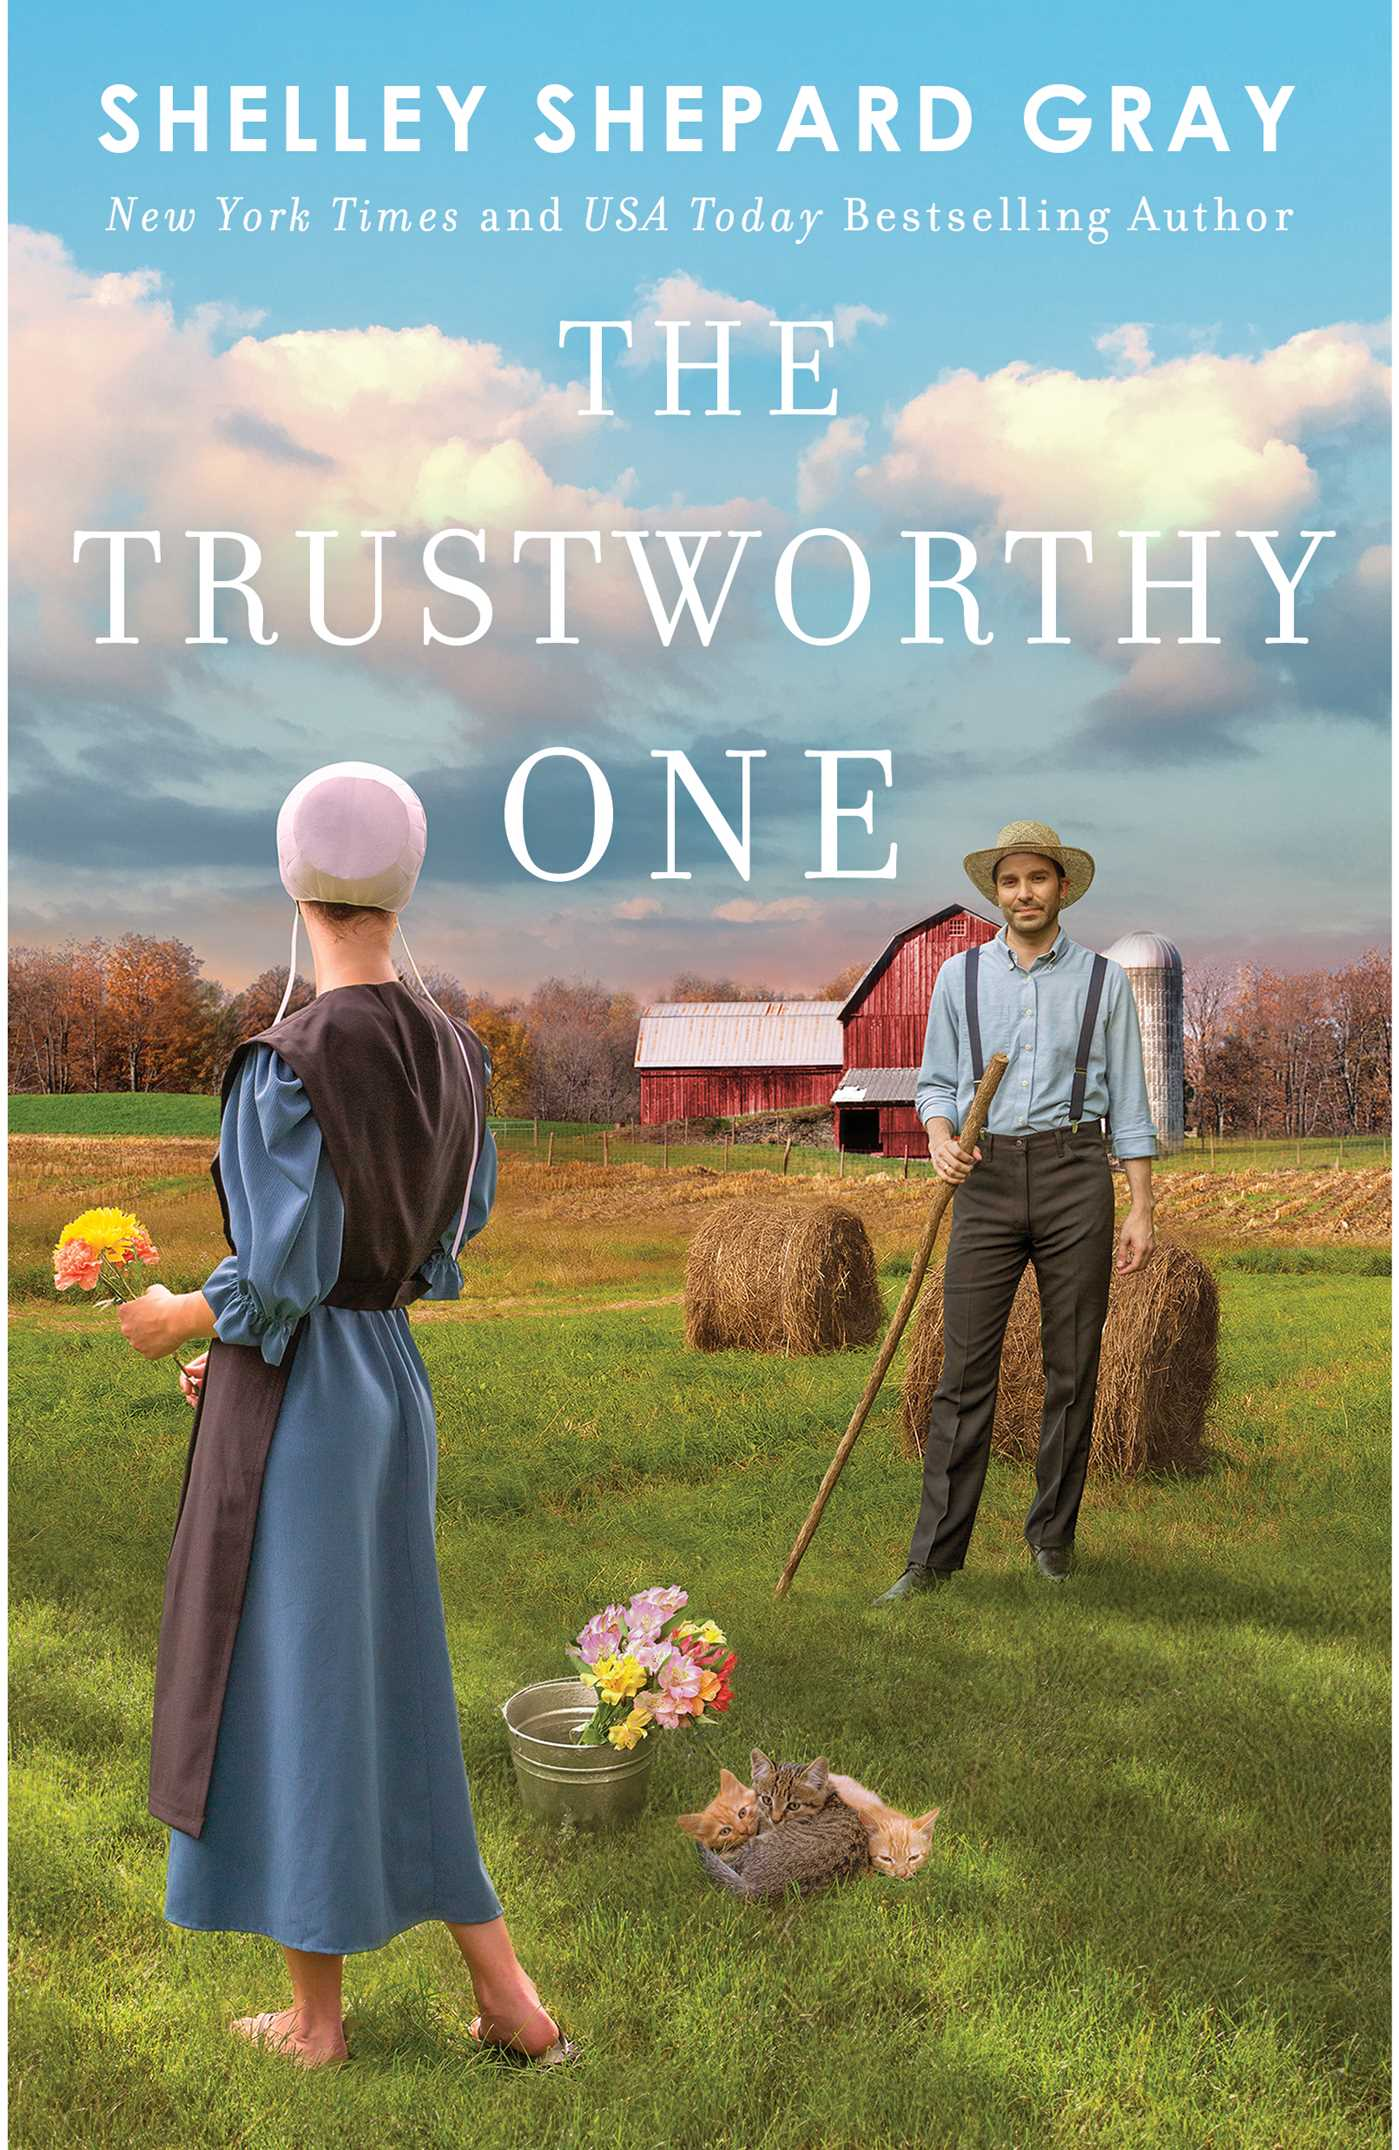 The Avid Reader The Trustworthy One By Shelley Shepard Gray